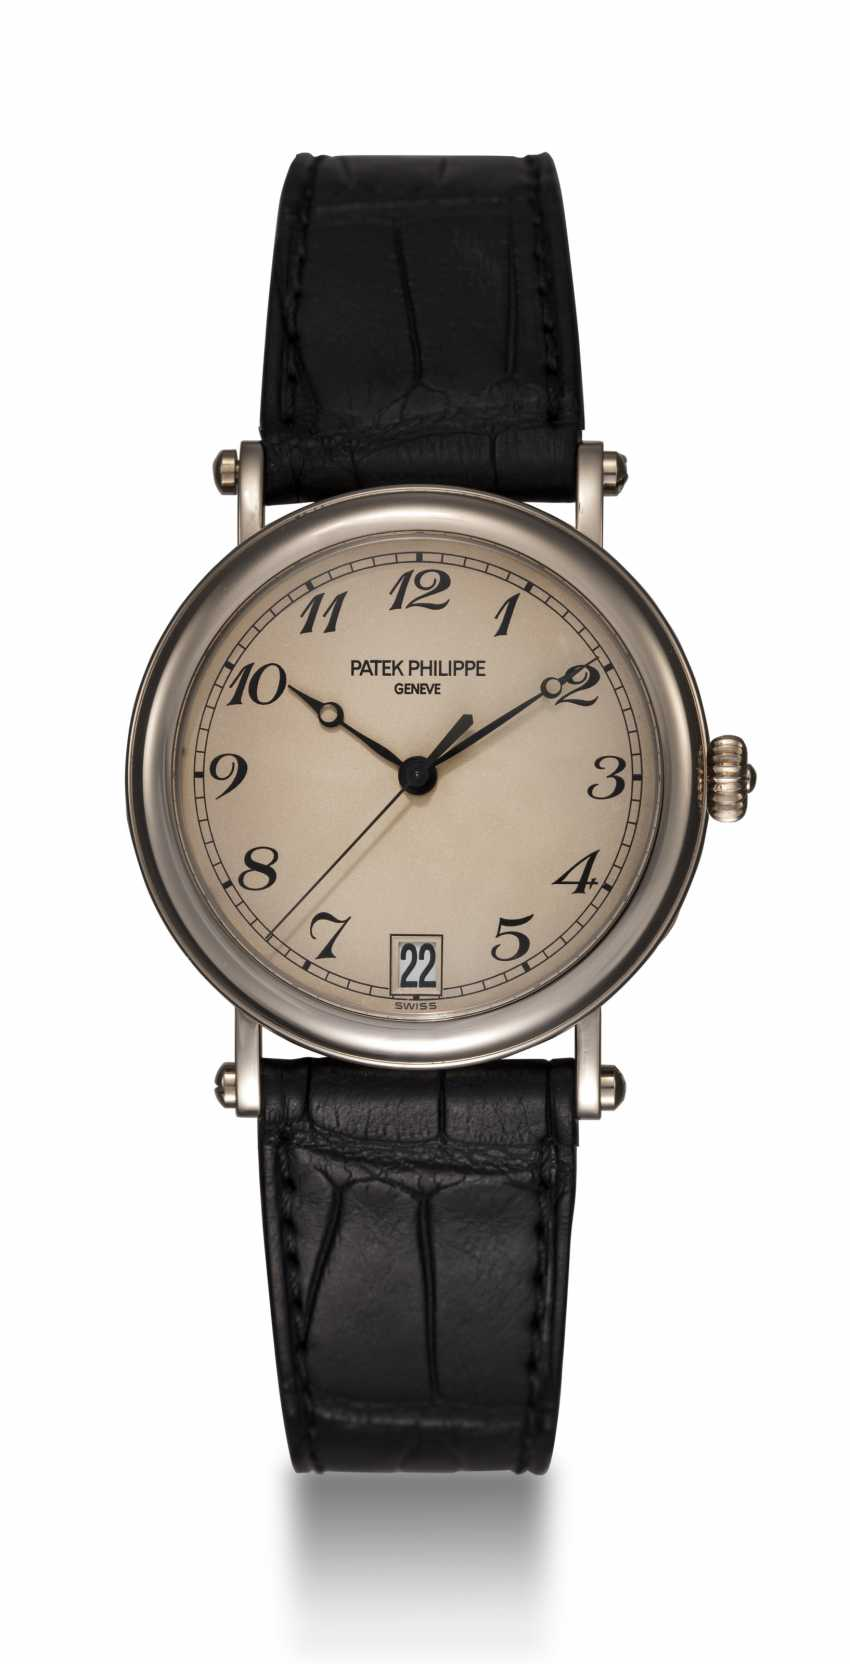 "PATEK PHILIPPE, A GOLD CALATRAVA WRISTWATCH WITH ""OFFICER'S CASEBACK"", REF. 5053G-001 - photo 4"